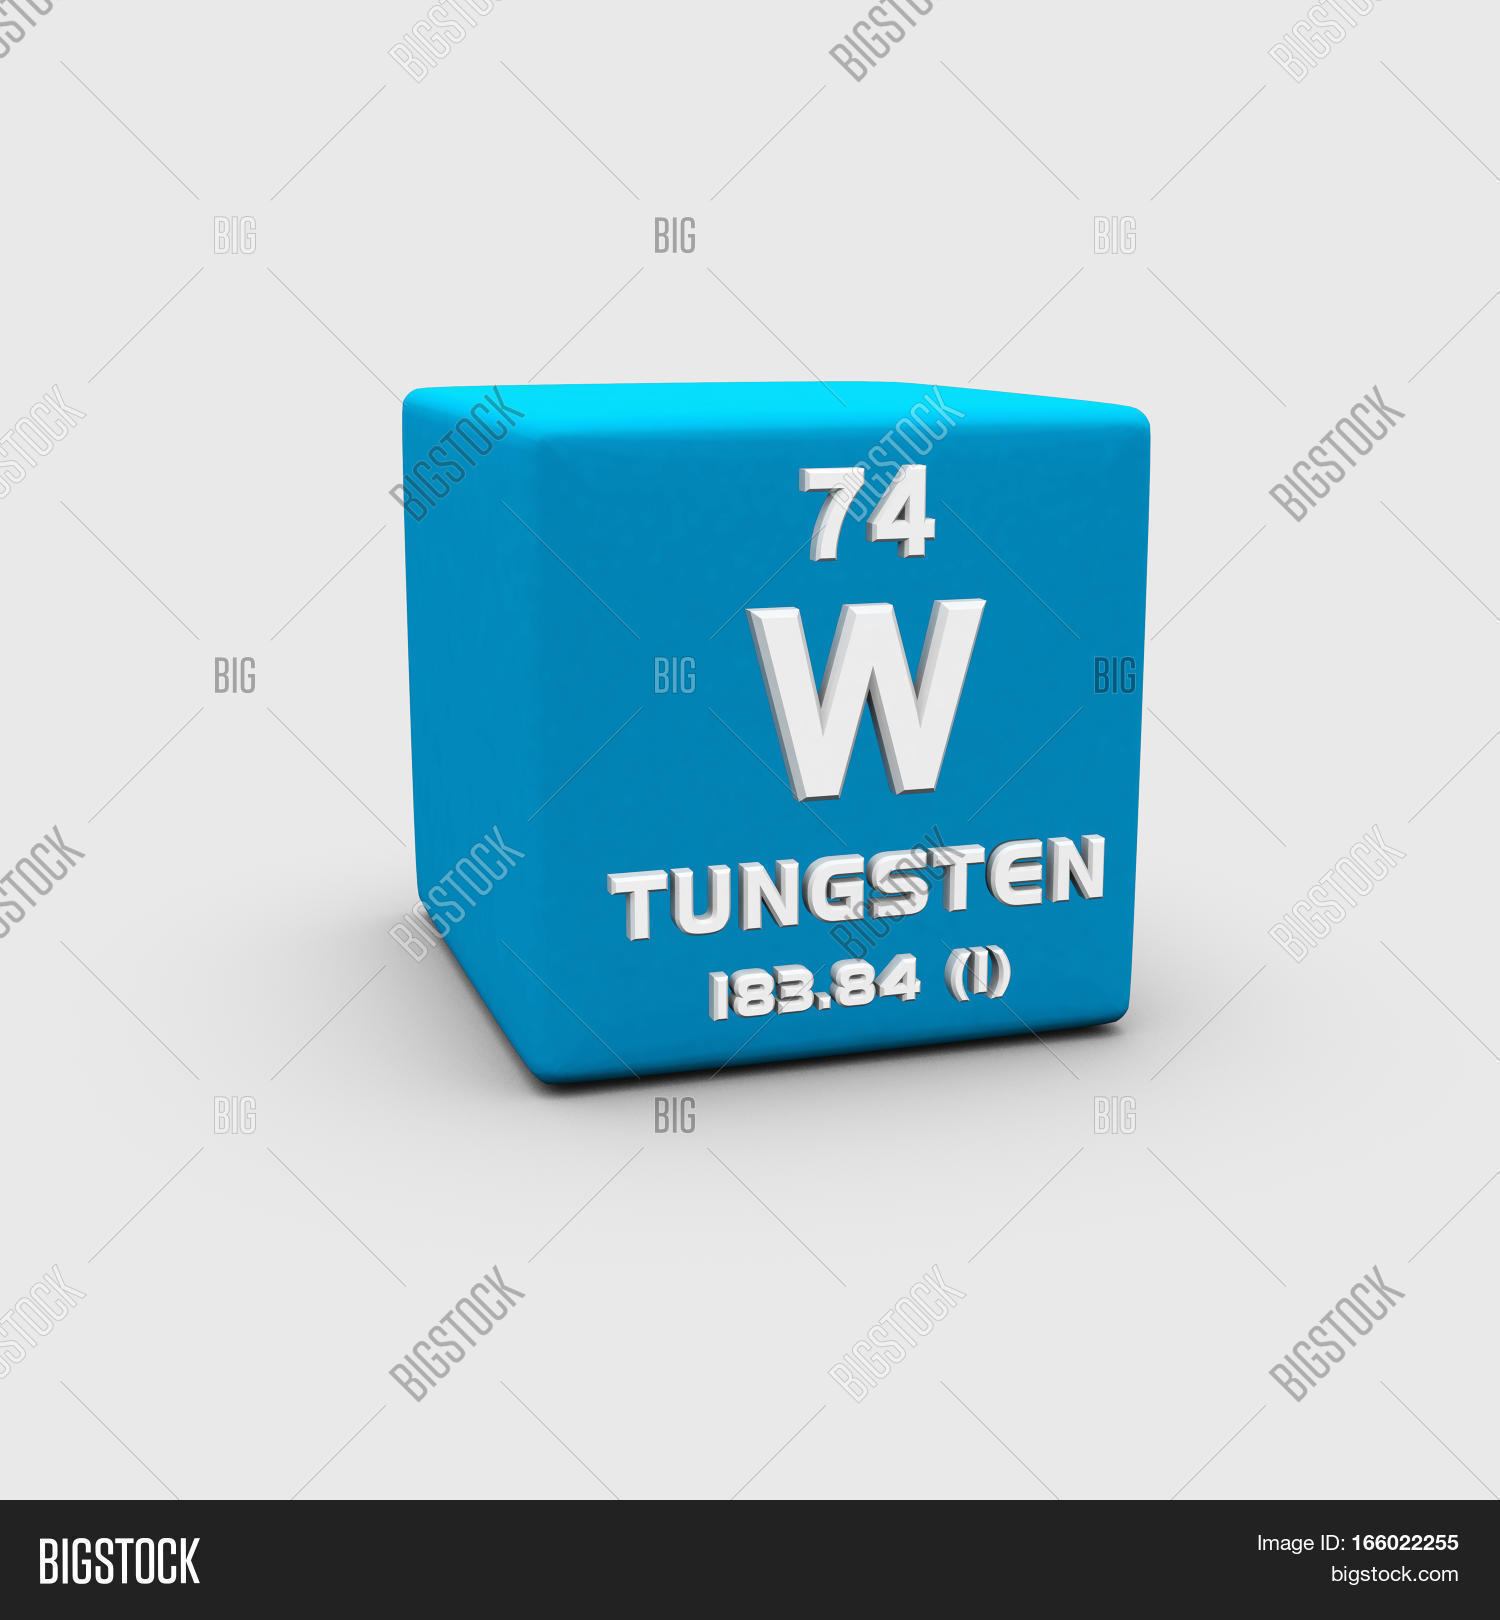 Tungsten Known Image Photo Free Trial Bigstock